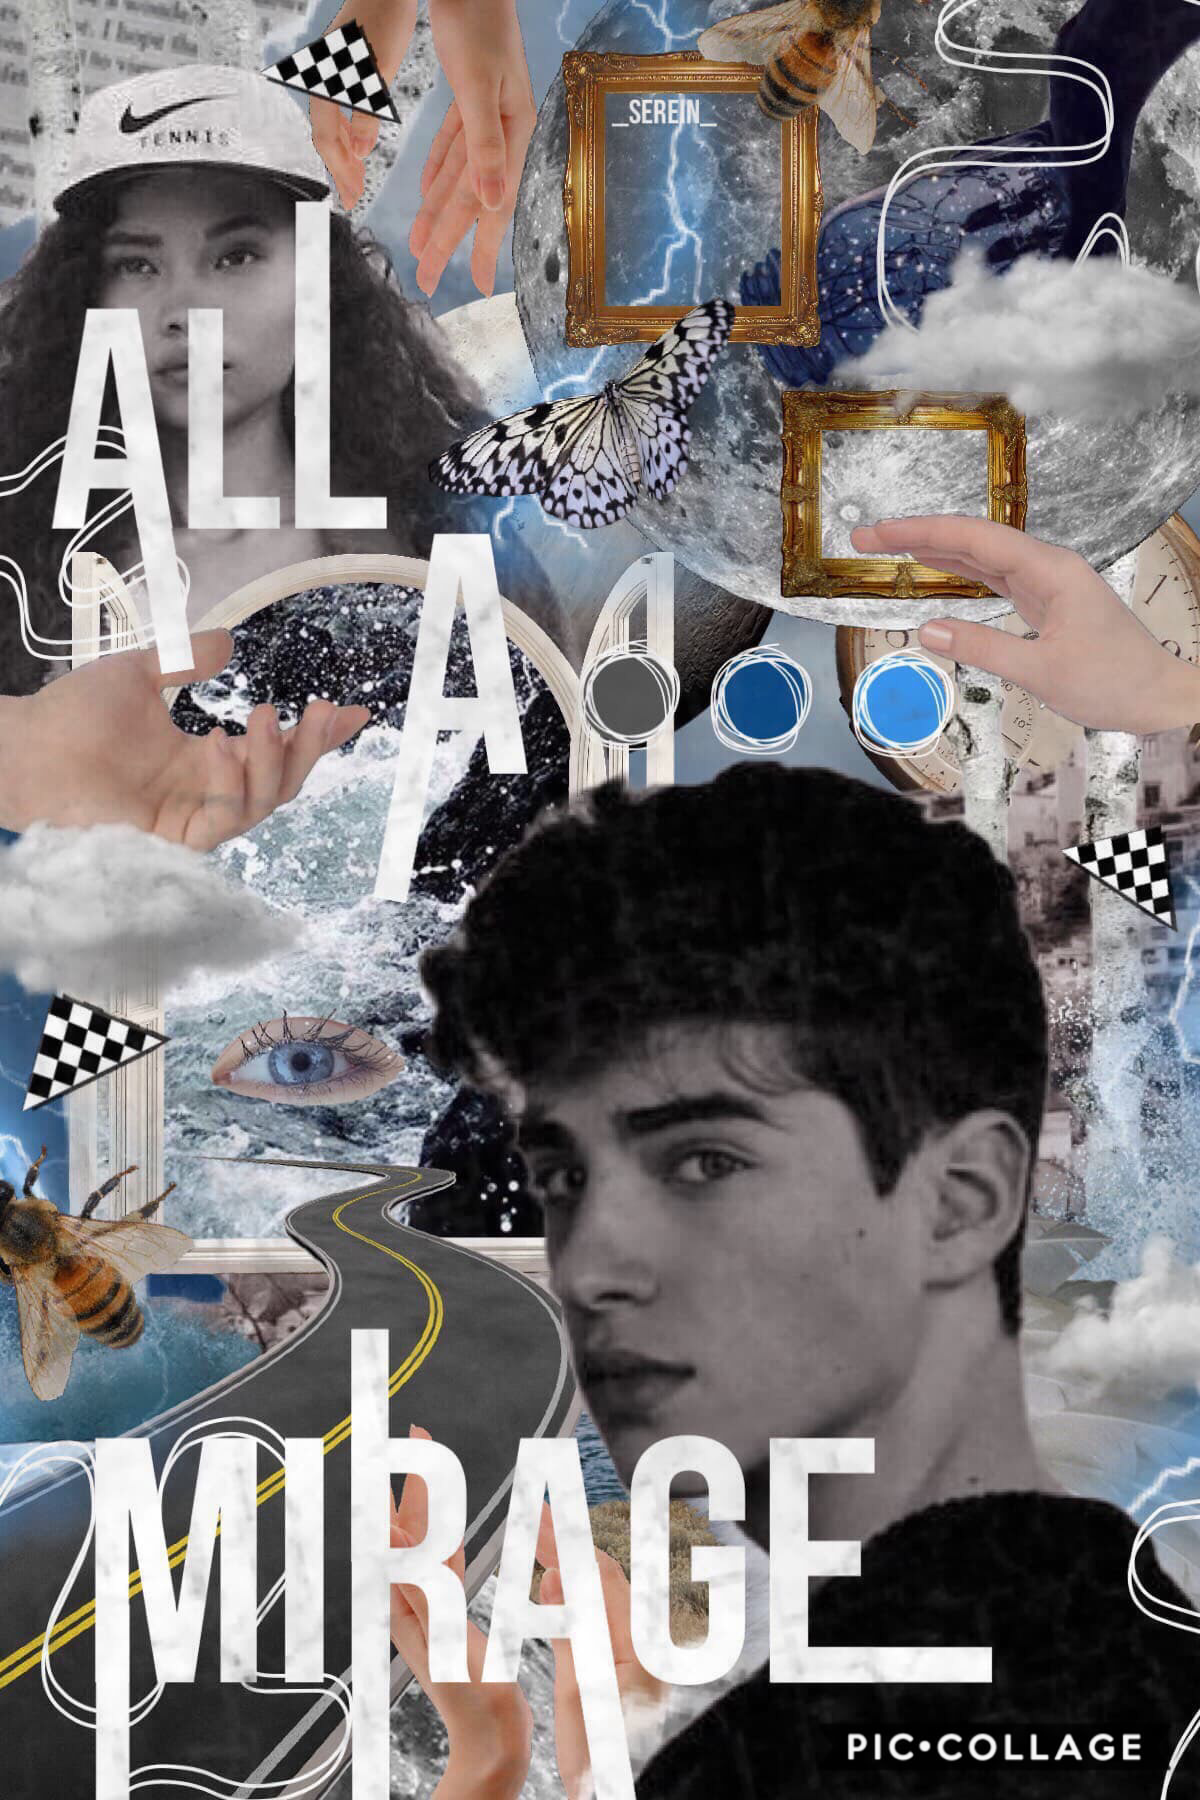 """💧TAP💧 """"All a mirage."""" -me lmaooo 🌫Sending storm vibes at you🌫 You are strong, kind and most importantly, you were born into this world for a reason, which is to make a difference where no one else will. Don't let others define you, and love yourself like"""